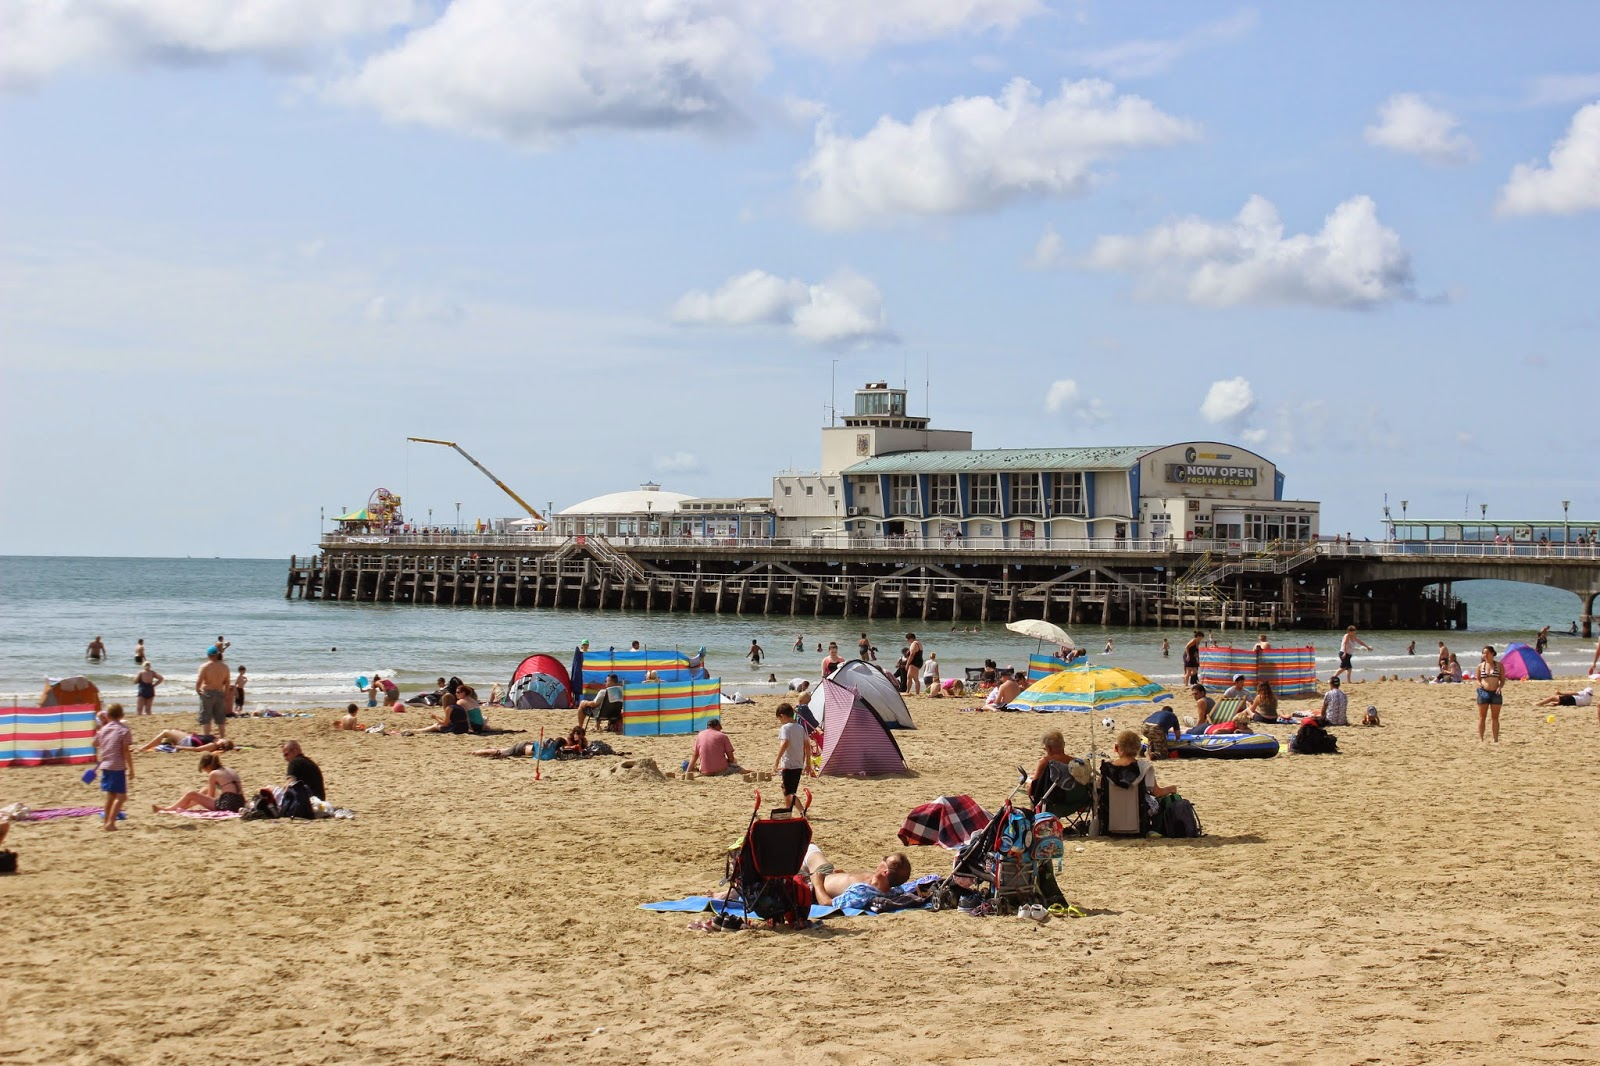 A Weekend In Bournemouth